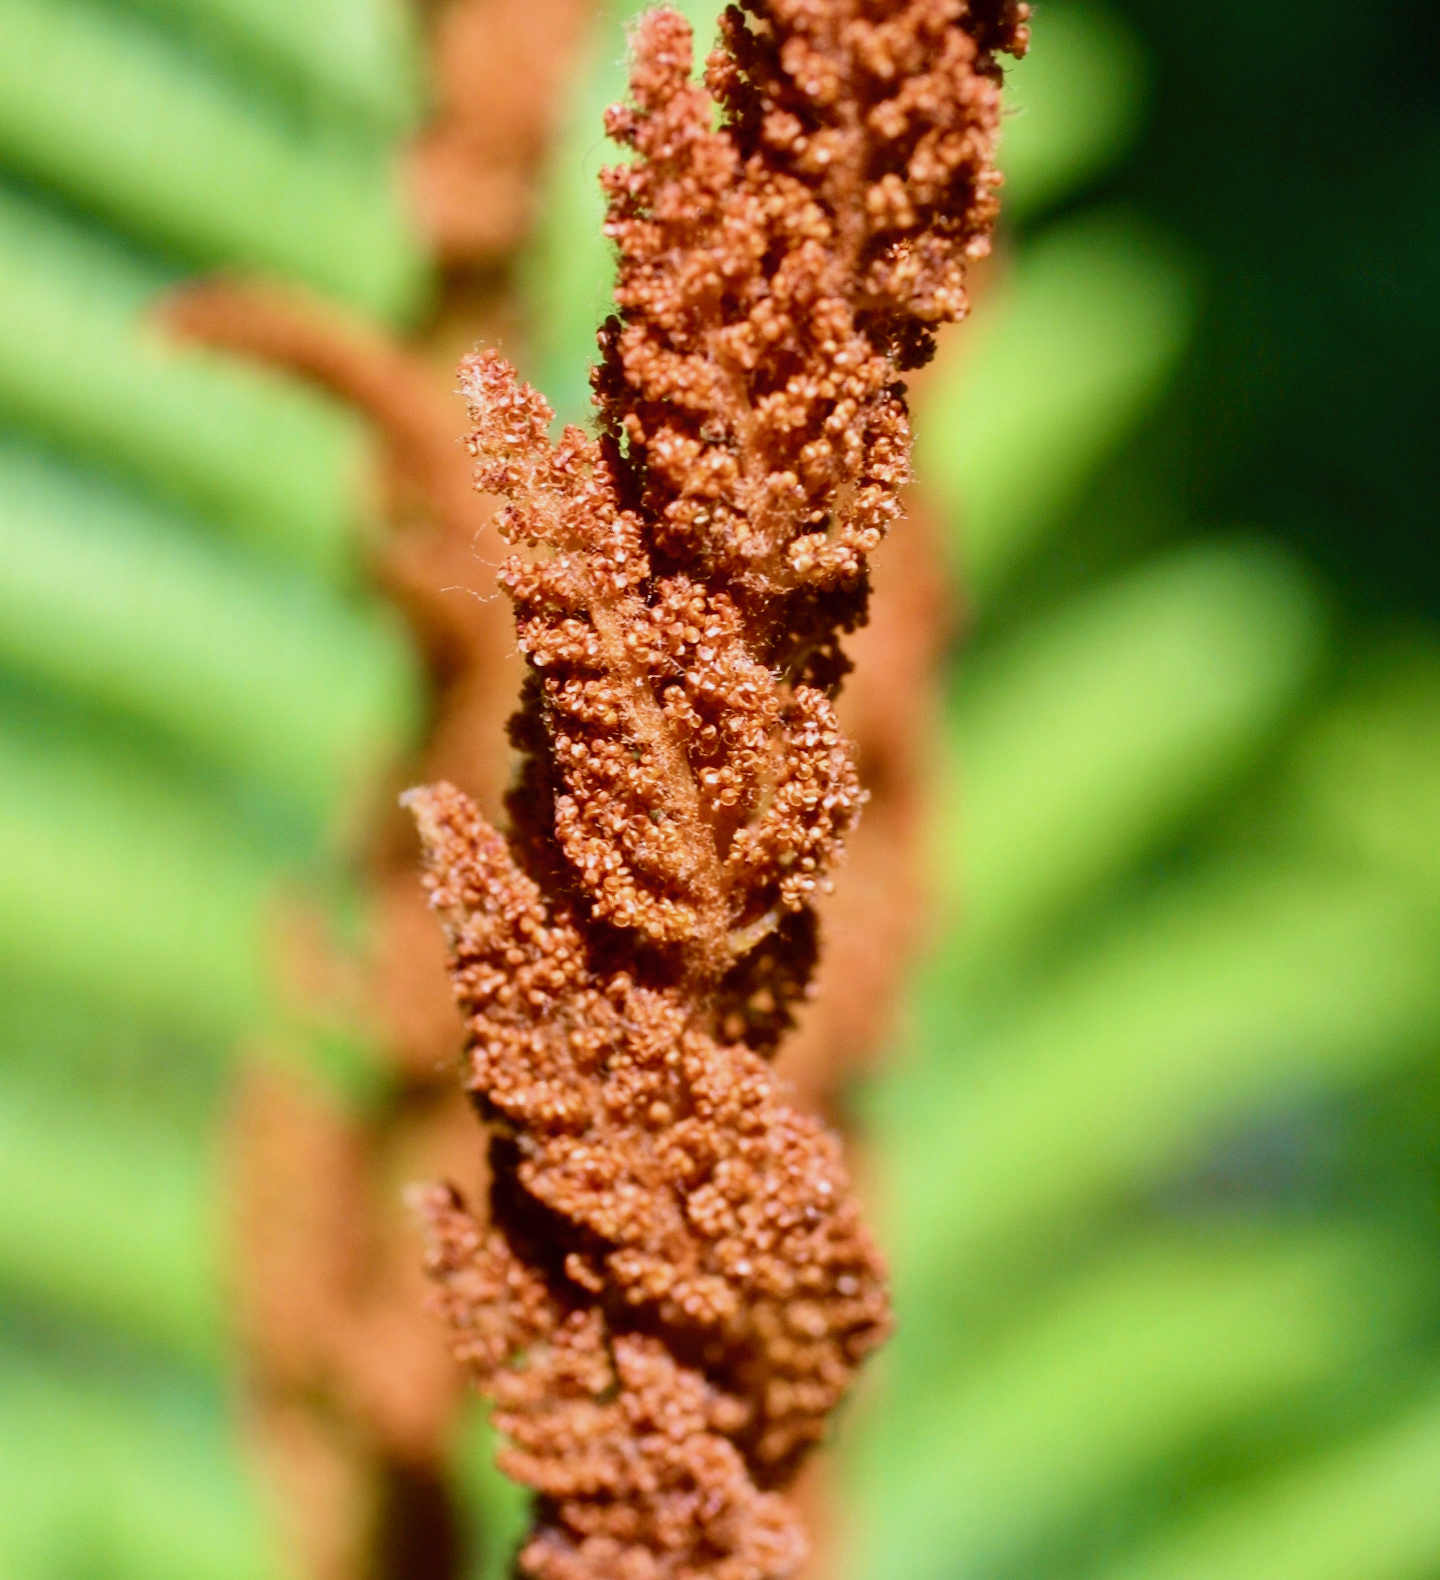 The Scientific Name is Osmundastrum cinnamomeum [=Osmunda cinnamomea]. You will likely hear them called Cinnamon Fern. This picture shows the Fertile pinnae with ripe sporangia of Osmundastrum cinnamomeum [=Osmunda cinnamomea]